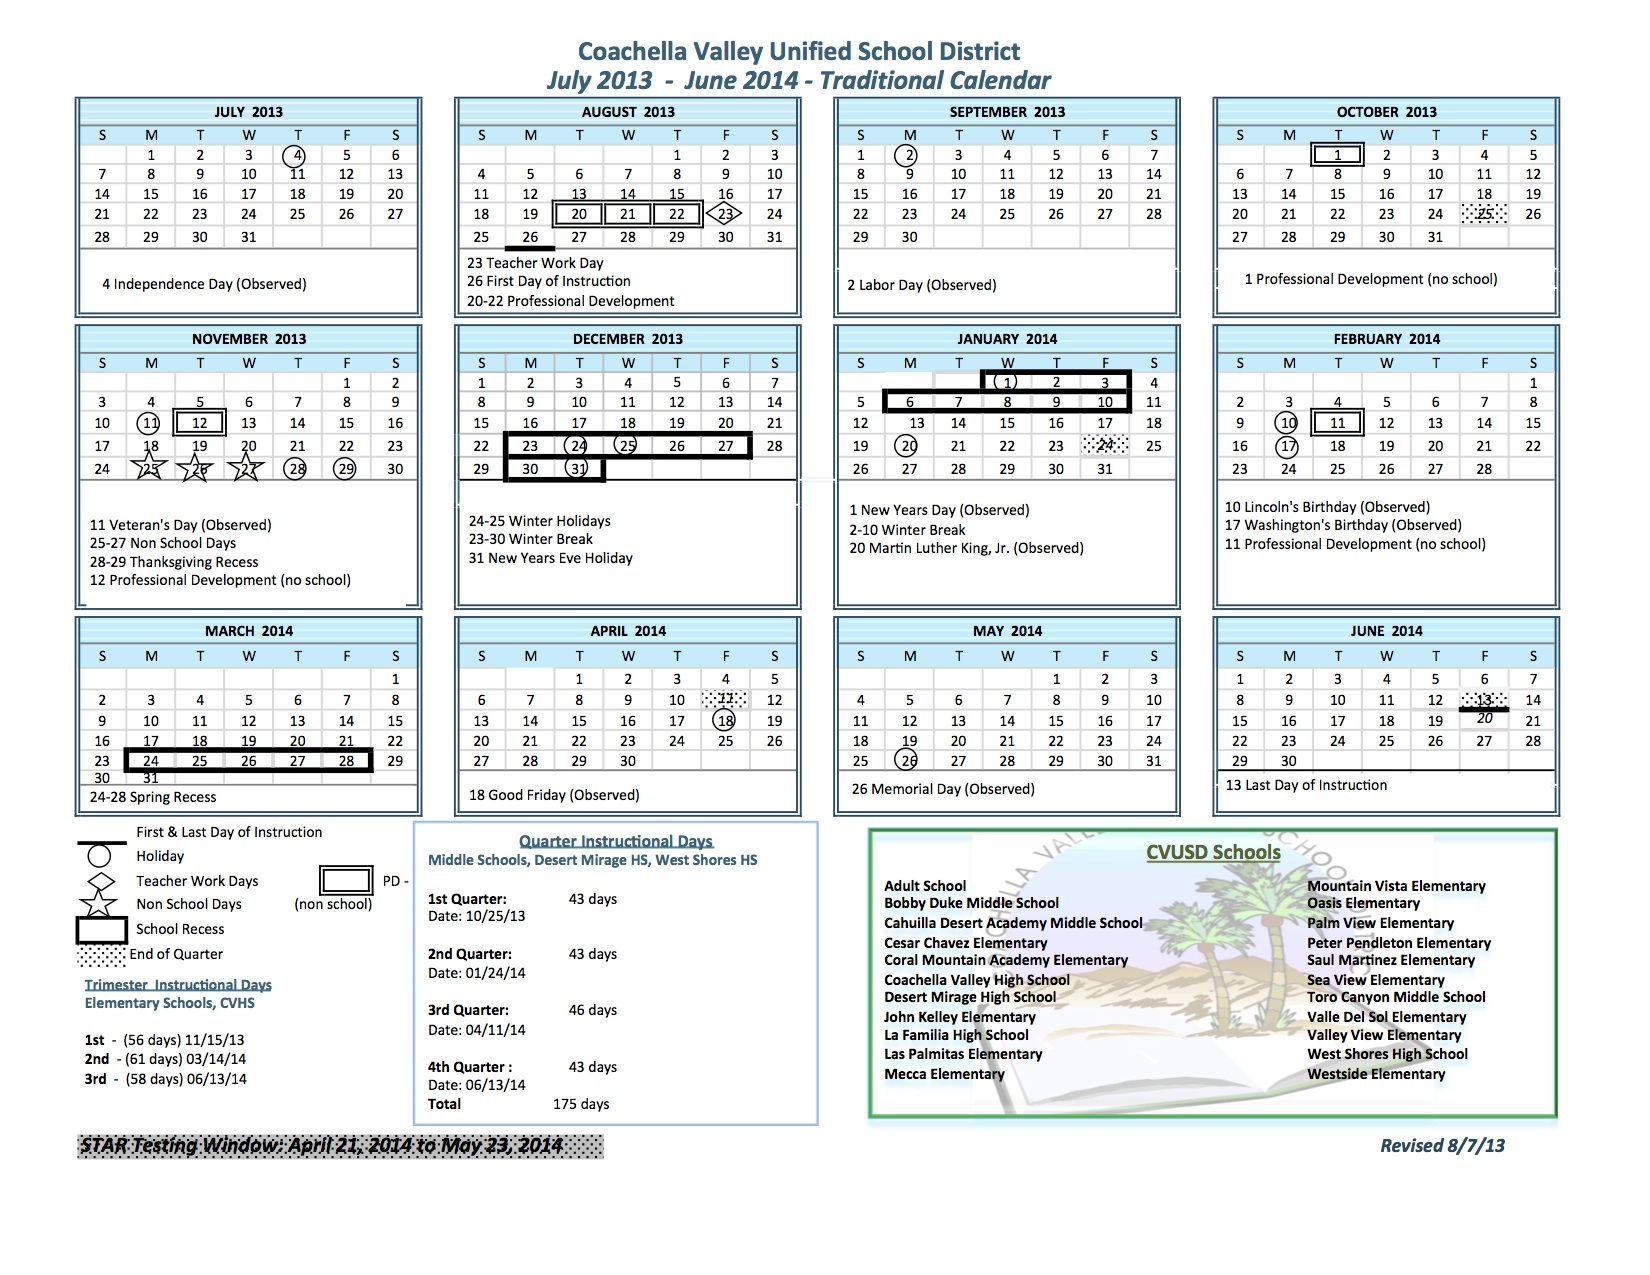 Indiana Weselyn Online Studies Calendar | Printable within Gcu Academic Calendar Non-Traditional 2020